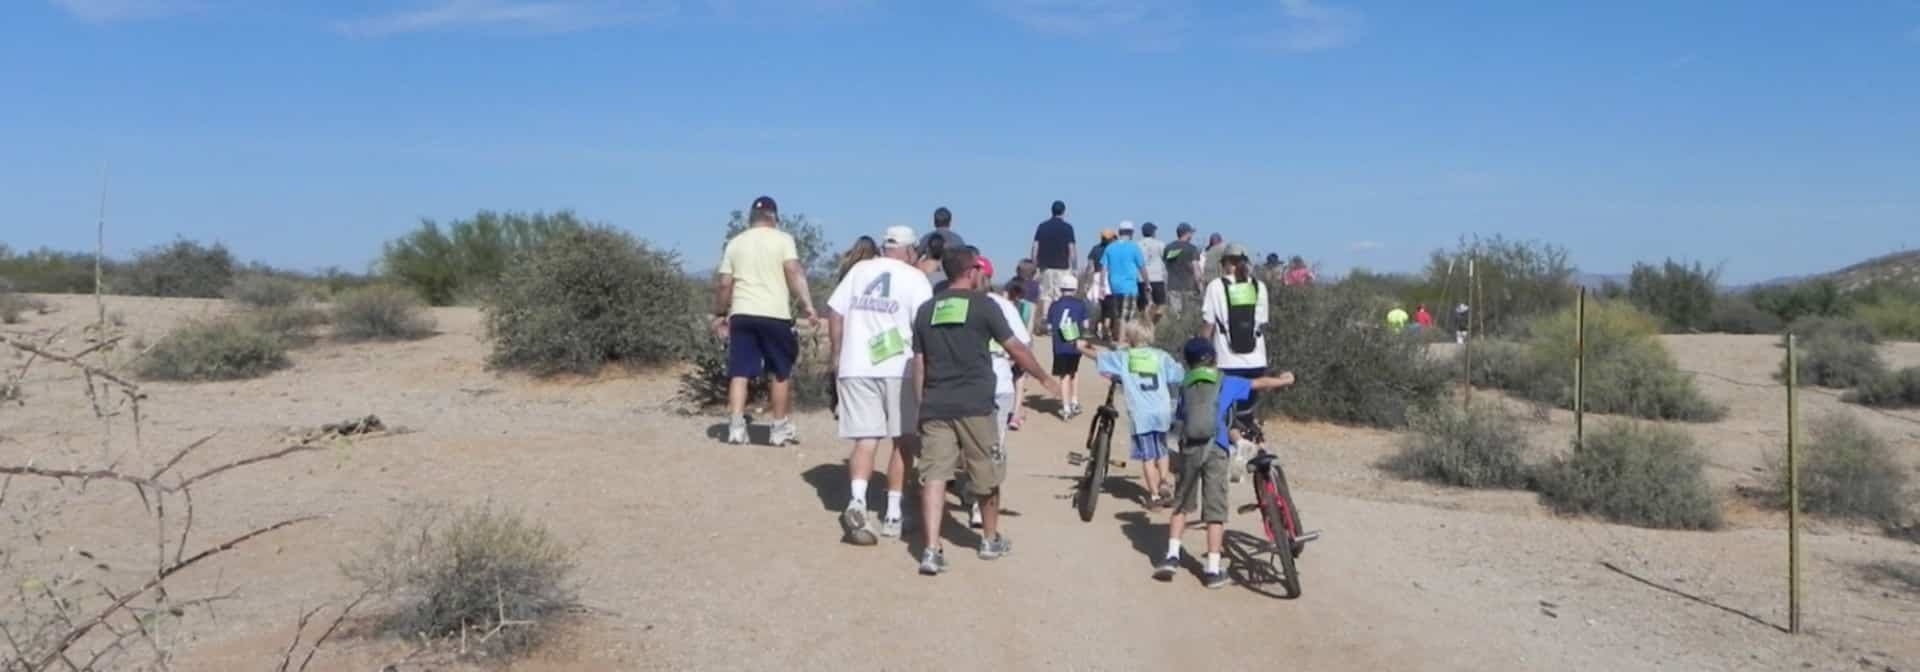 Arizona MG Walk 2014